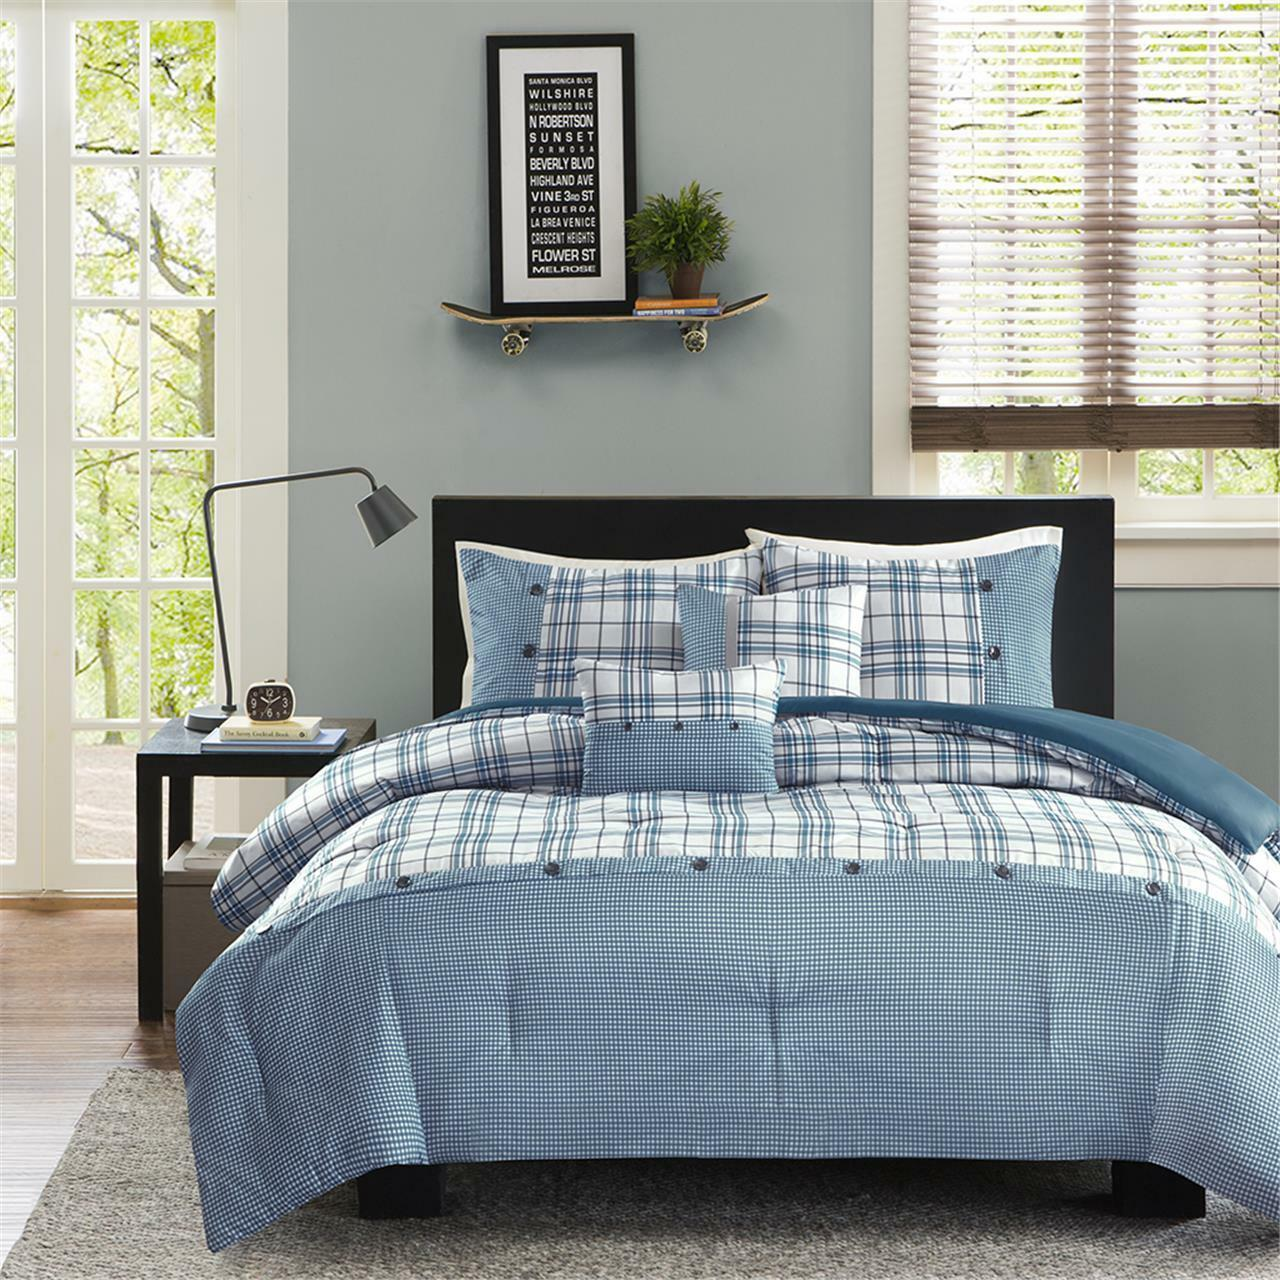 BEAUTIFUL COZY LIGHT TEAL Blau grau Weiß PLAID STRIPE COMFORTER SET & PILLOWS